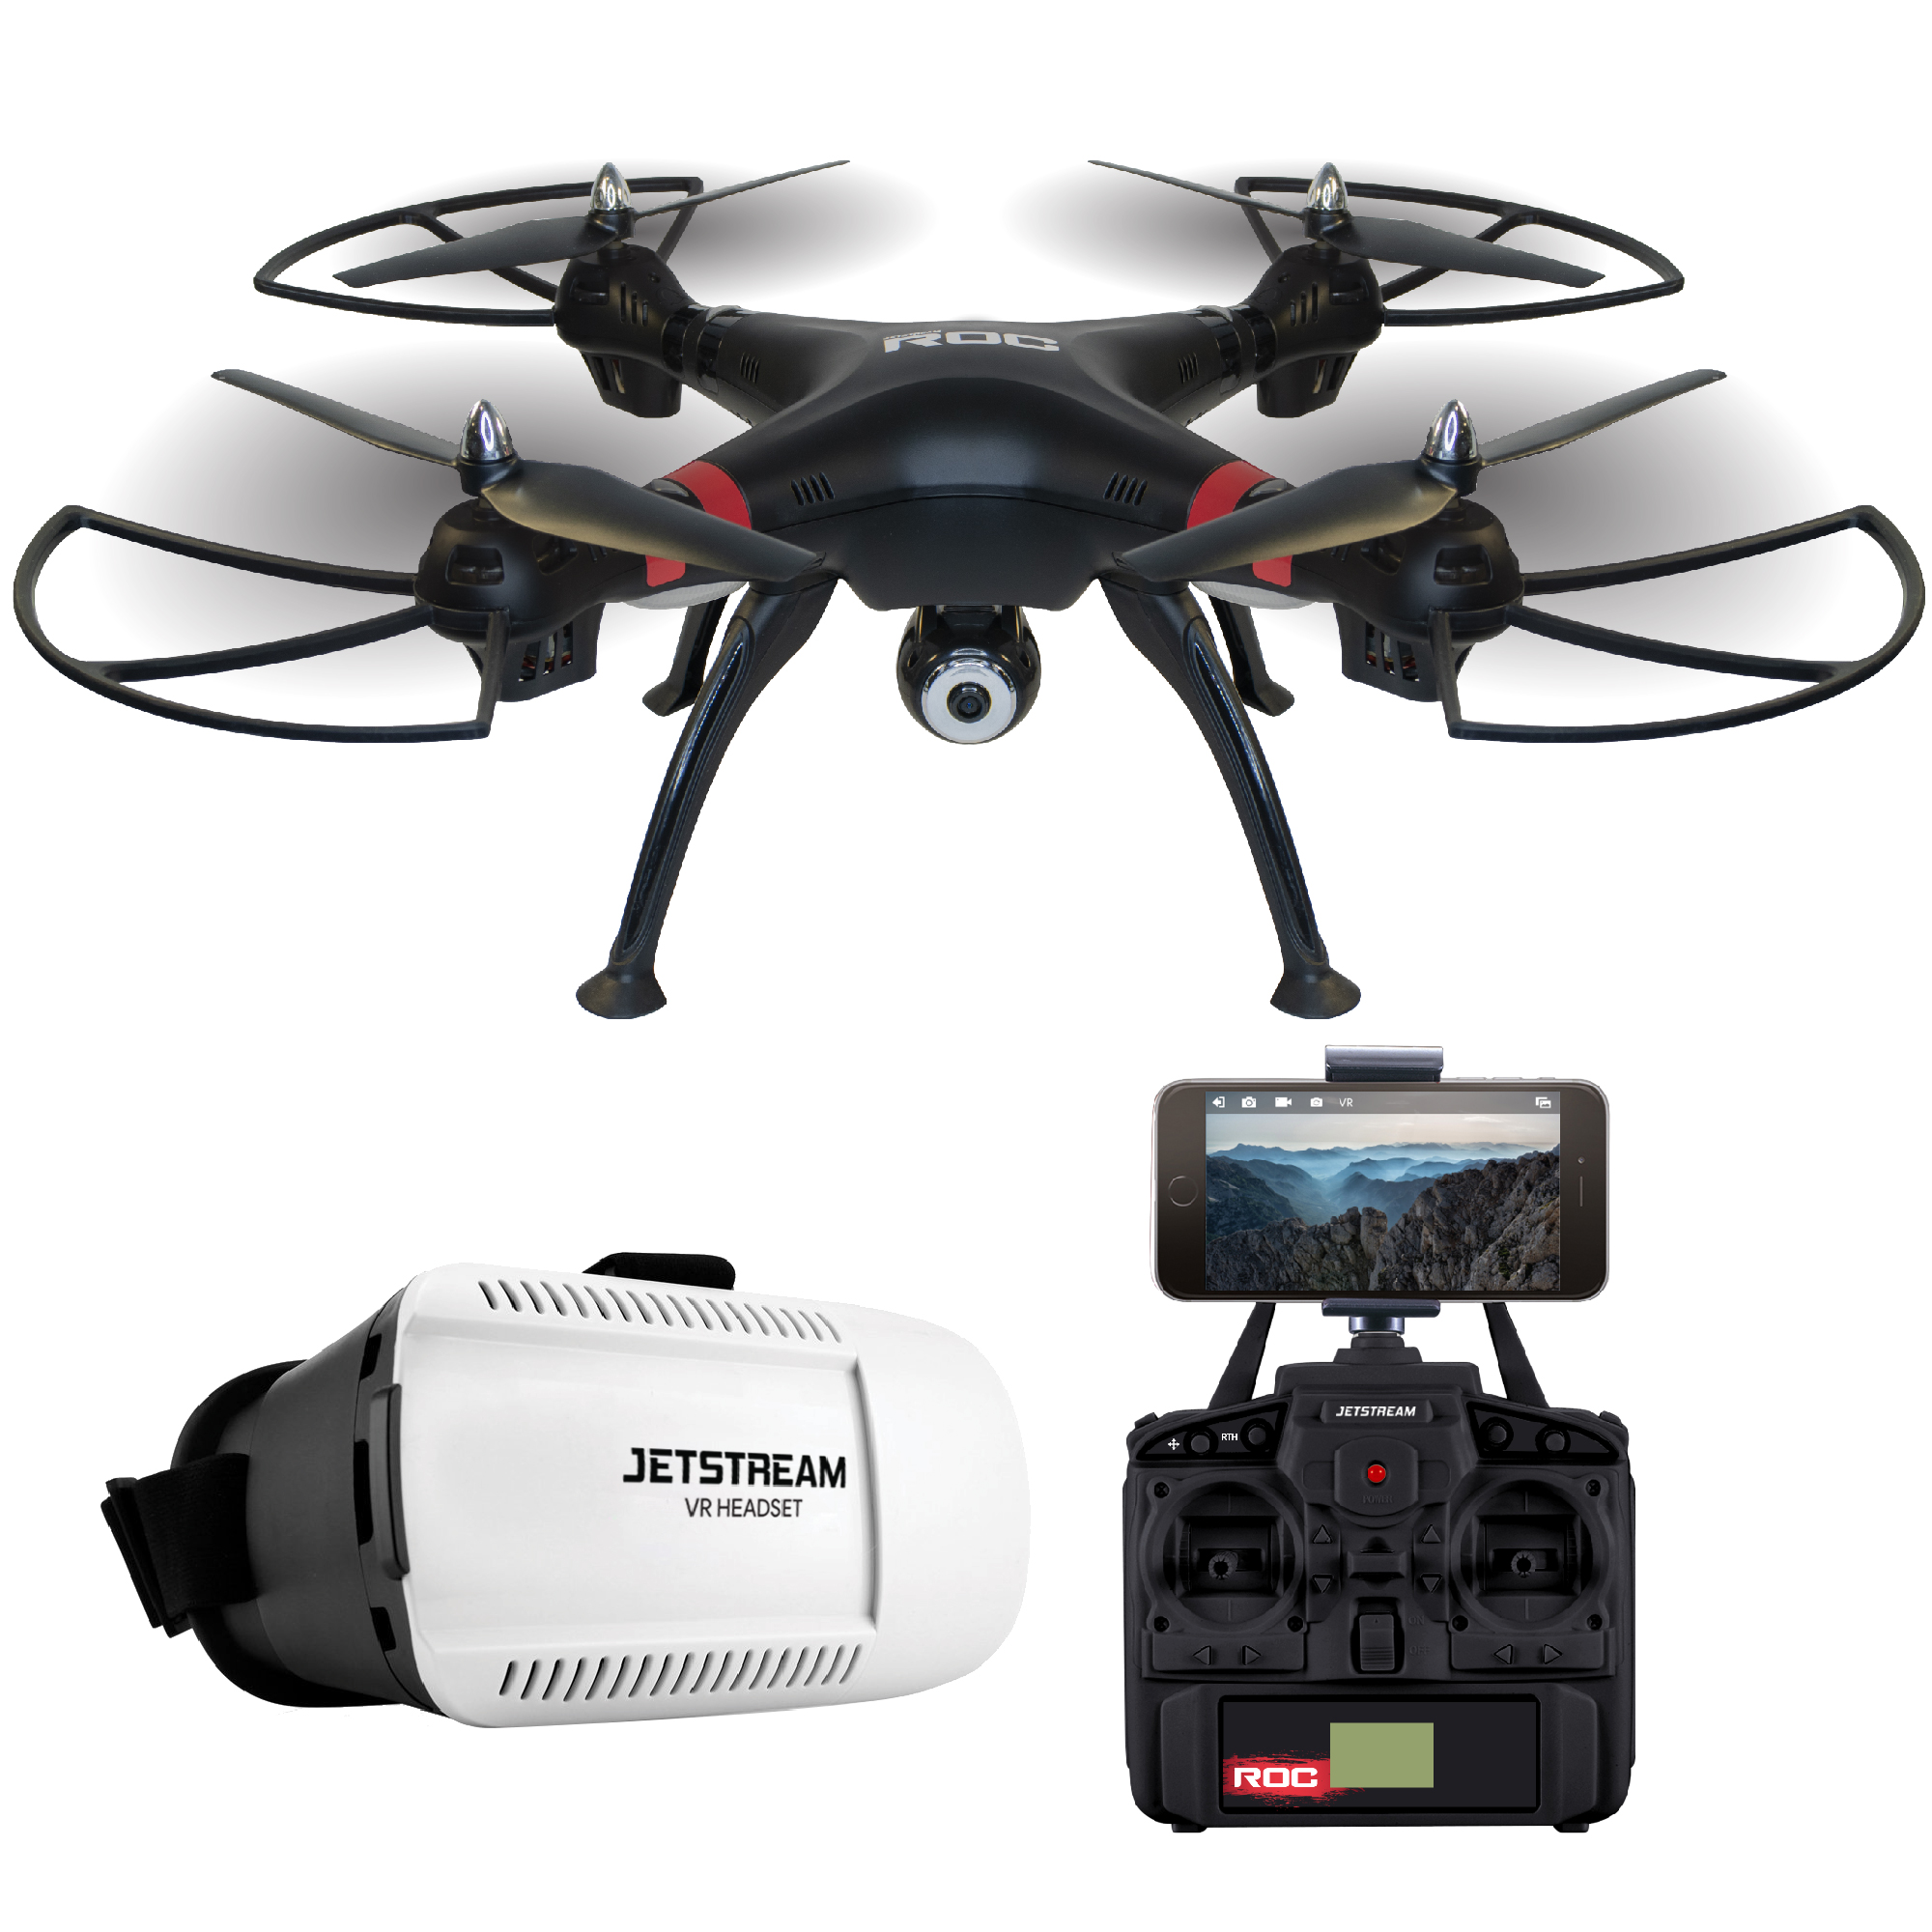 Jetstream ROC 2.4GHz Quadcopter Drone with a Controller, VR Headset, and HD Camera by Jetstream